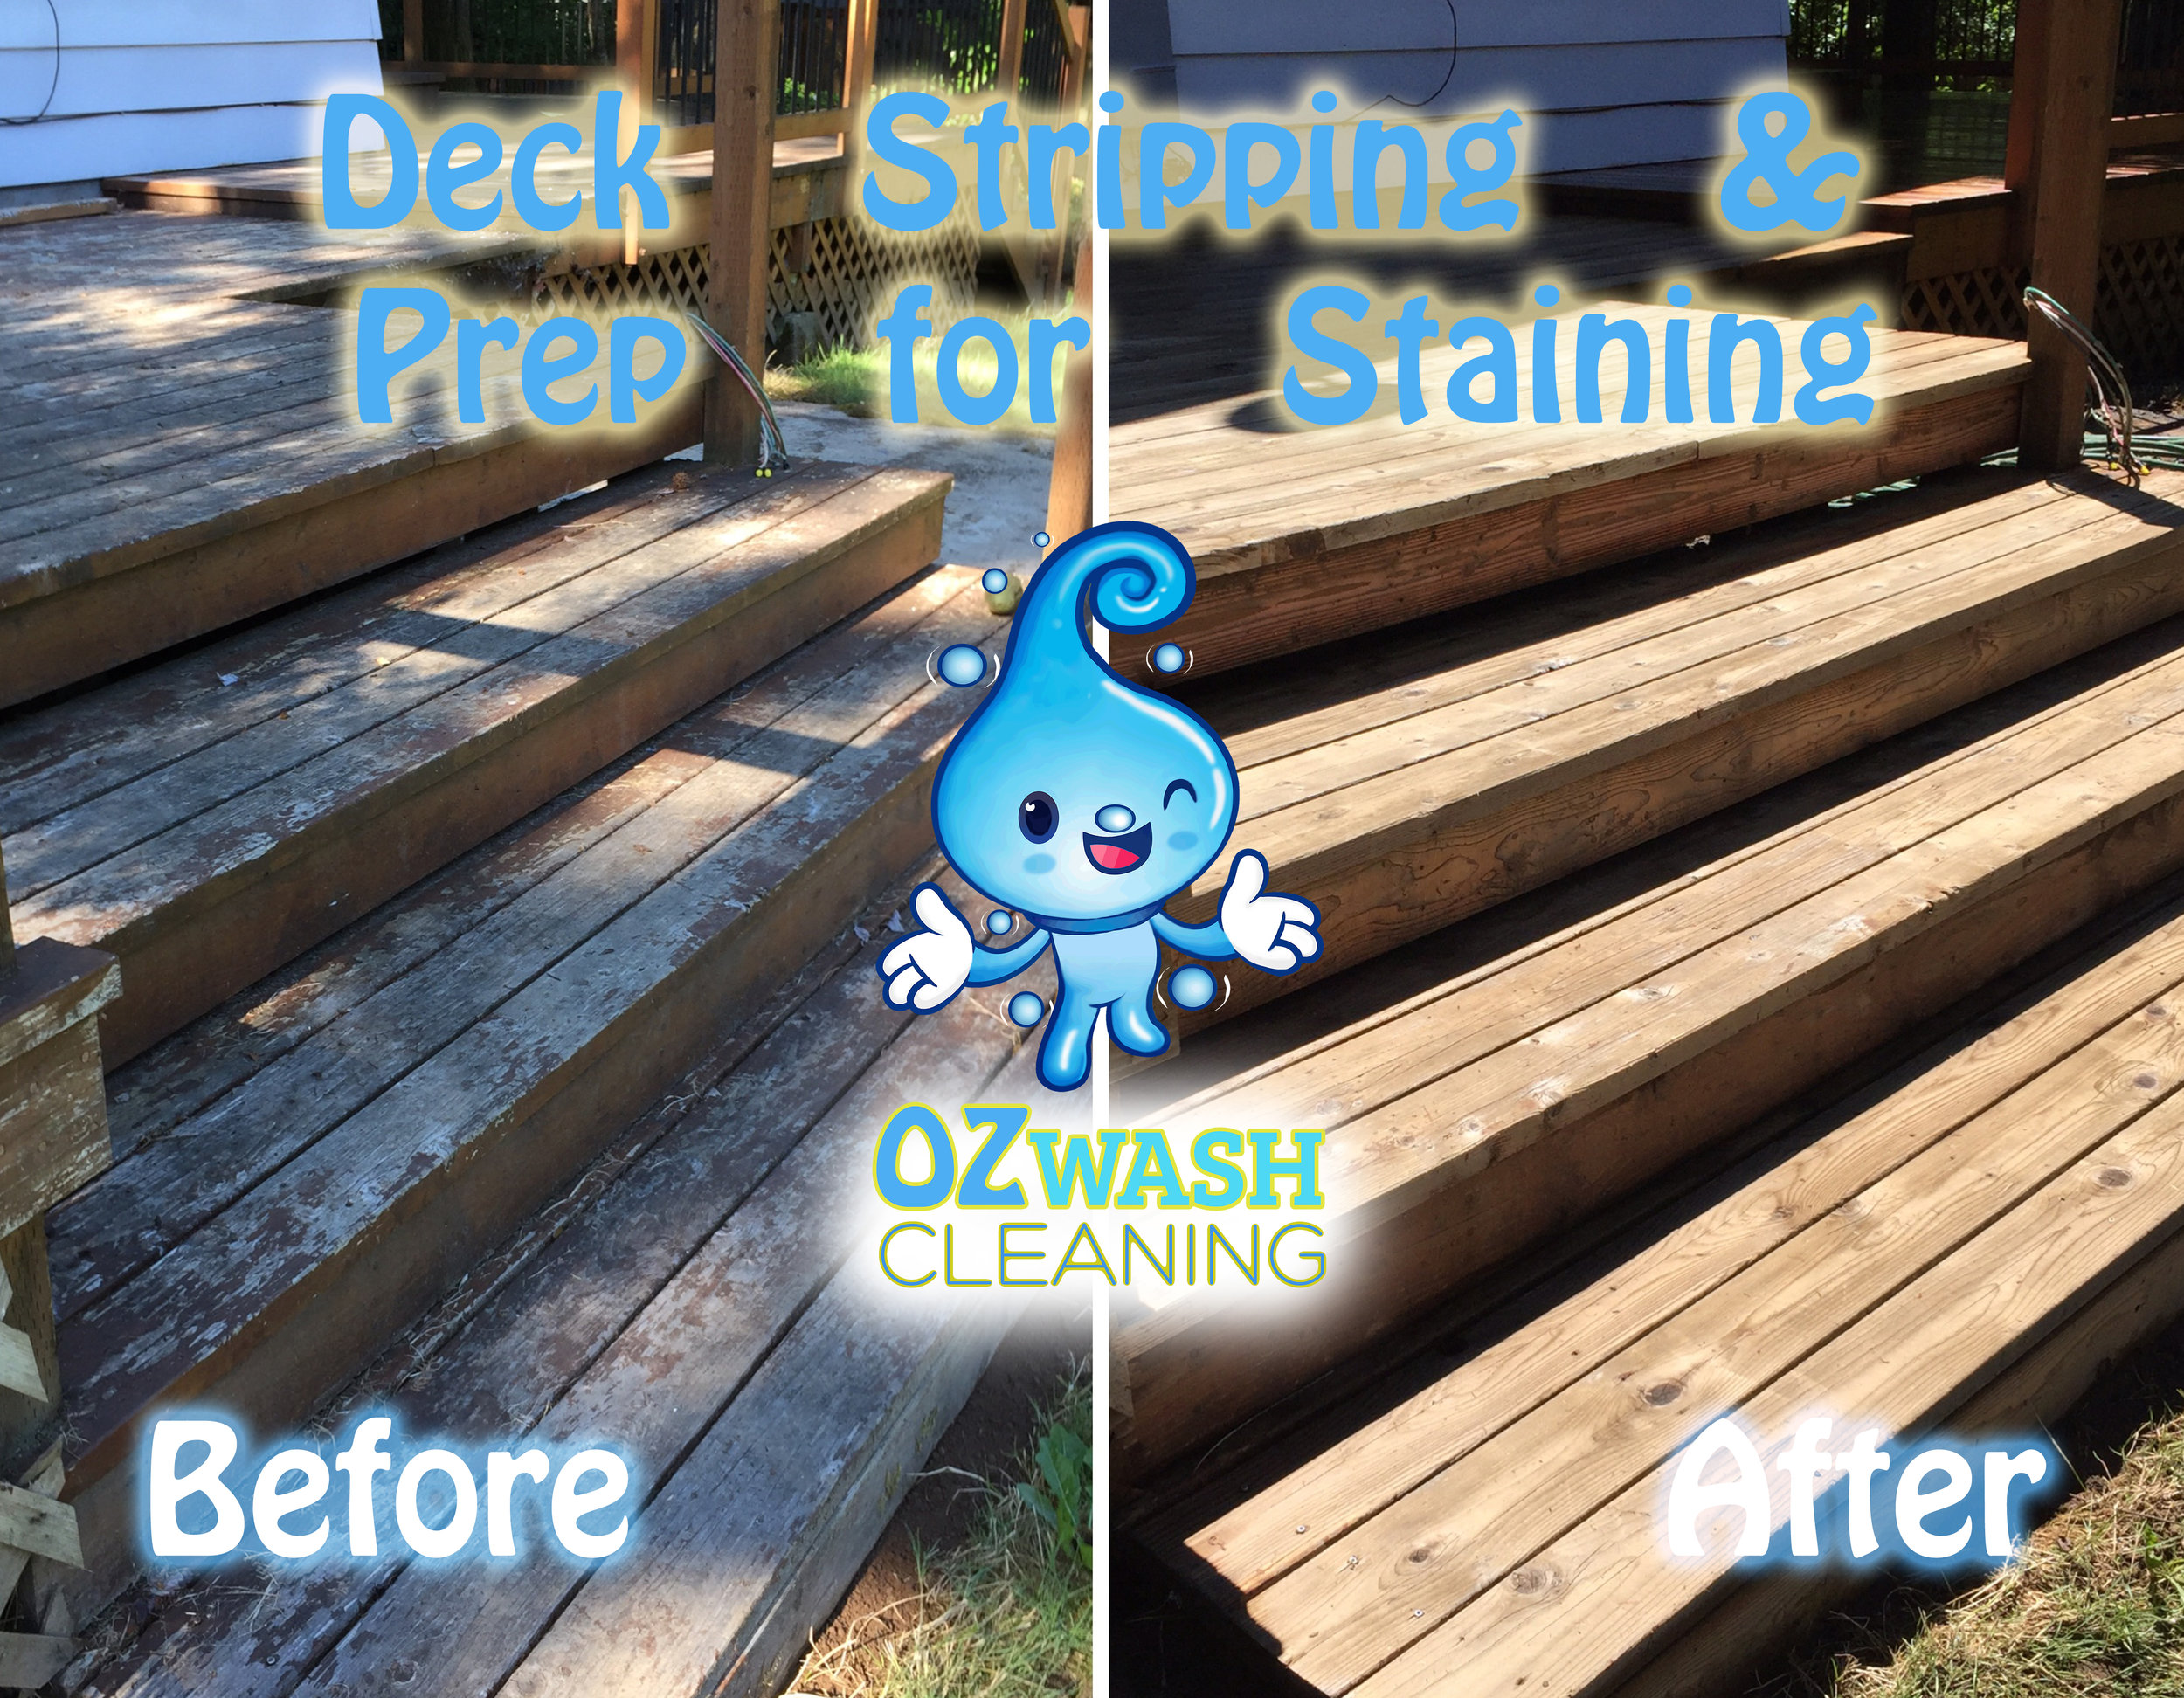 DeckReviving&Staining5.jpg